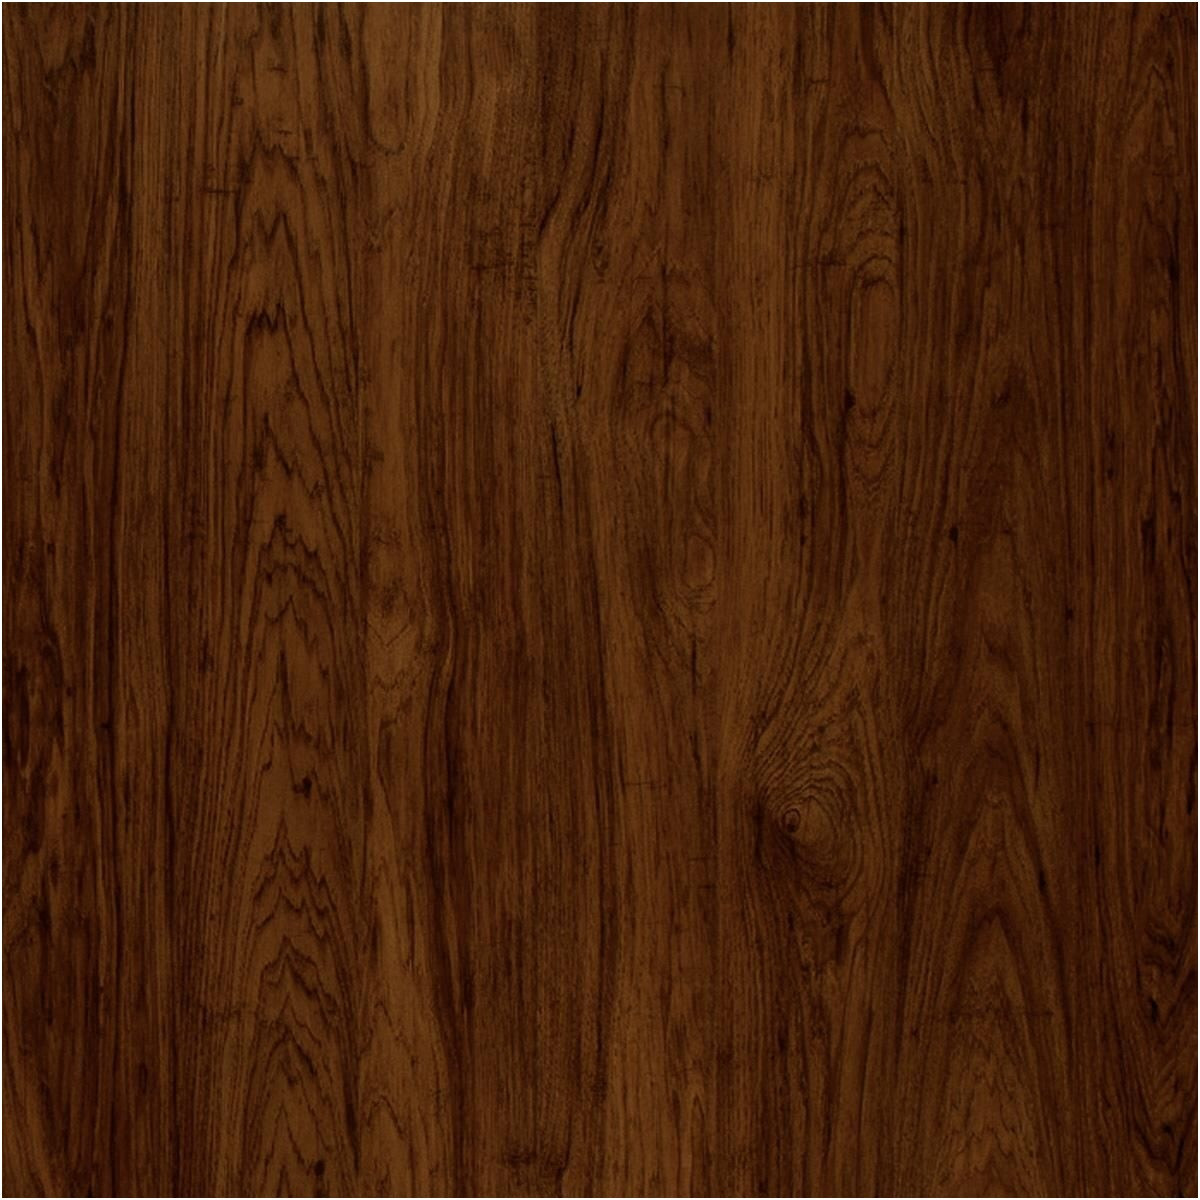 best hickory hardwood flooring of pergo wood flooring beautiful pergo pergo max 5 36 in heritage in pergo wood flooring unique fusboden herrlich fusboden schon mohawk industries best hardwood of pergo wood flooring